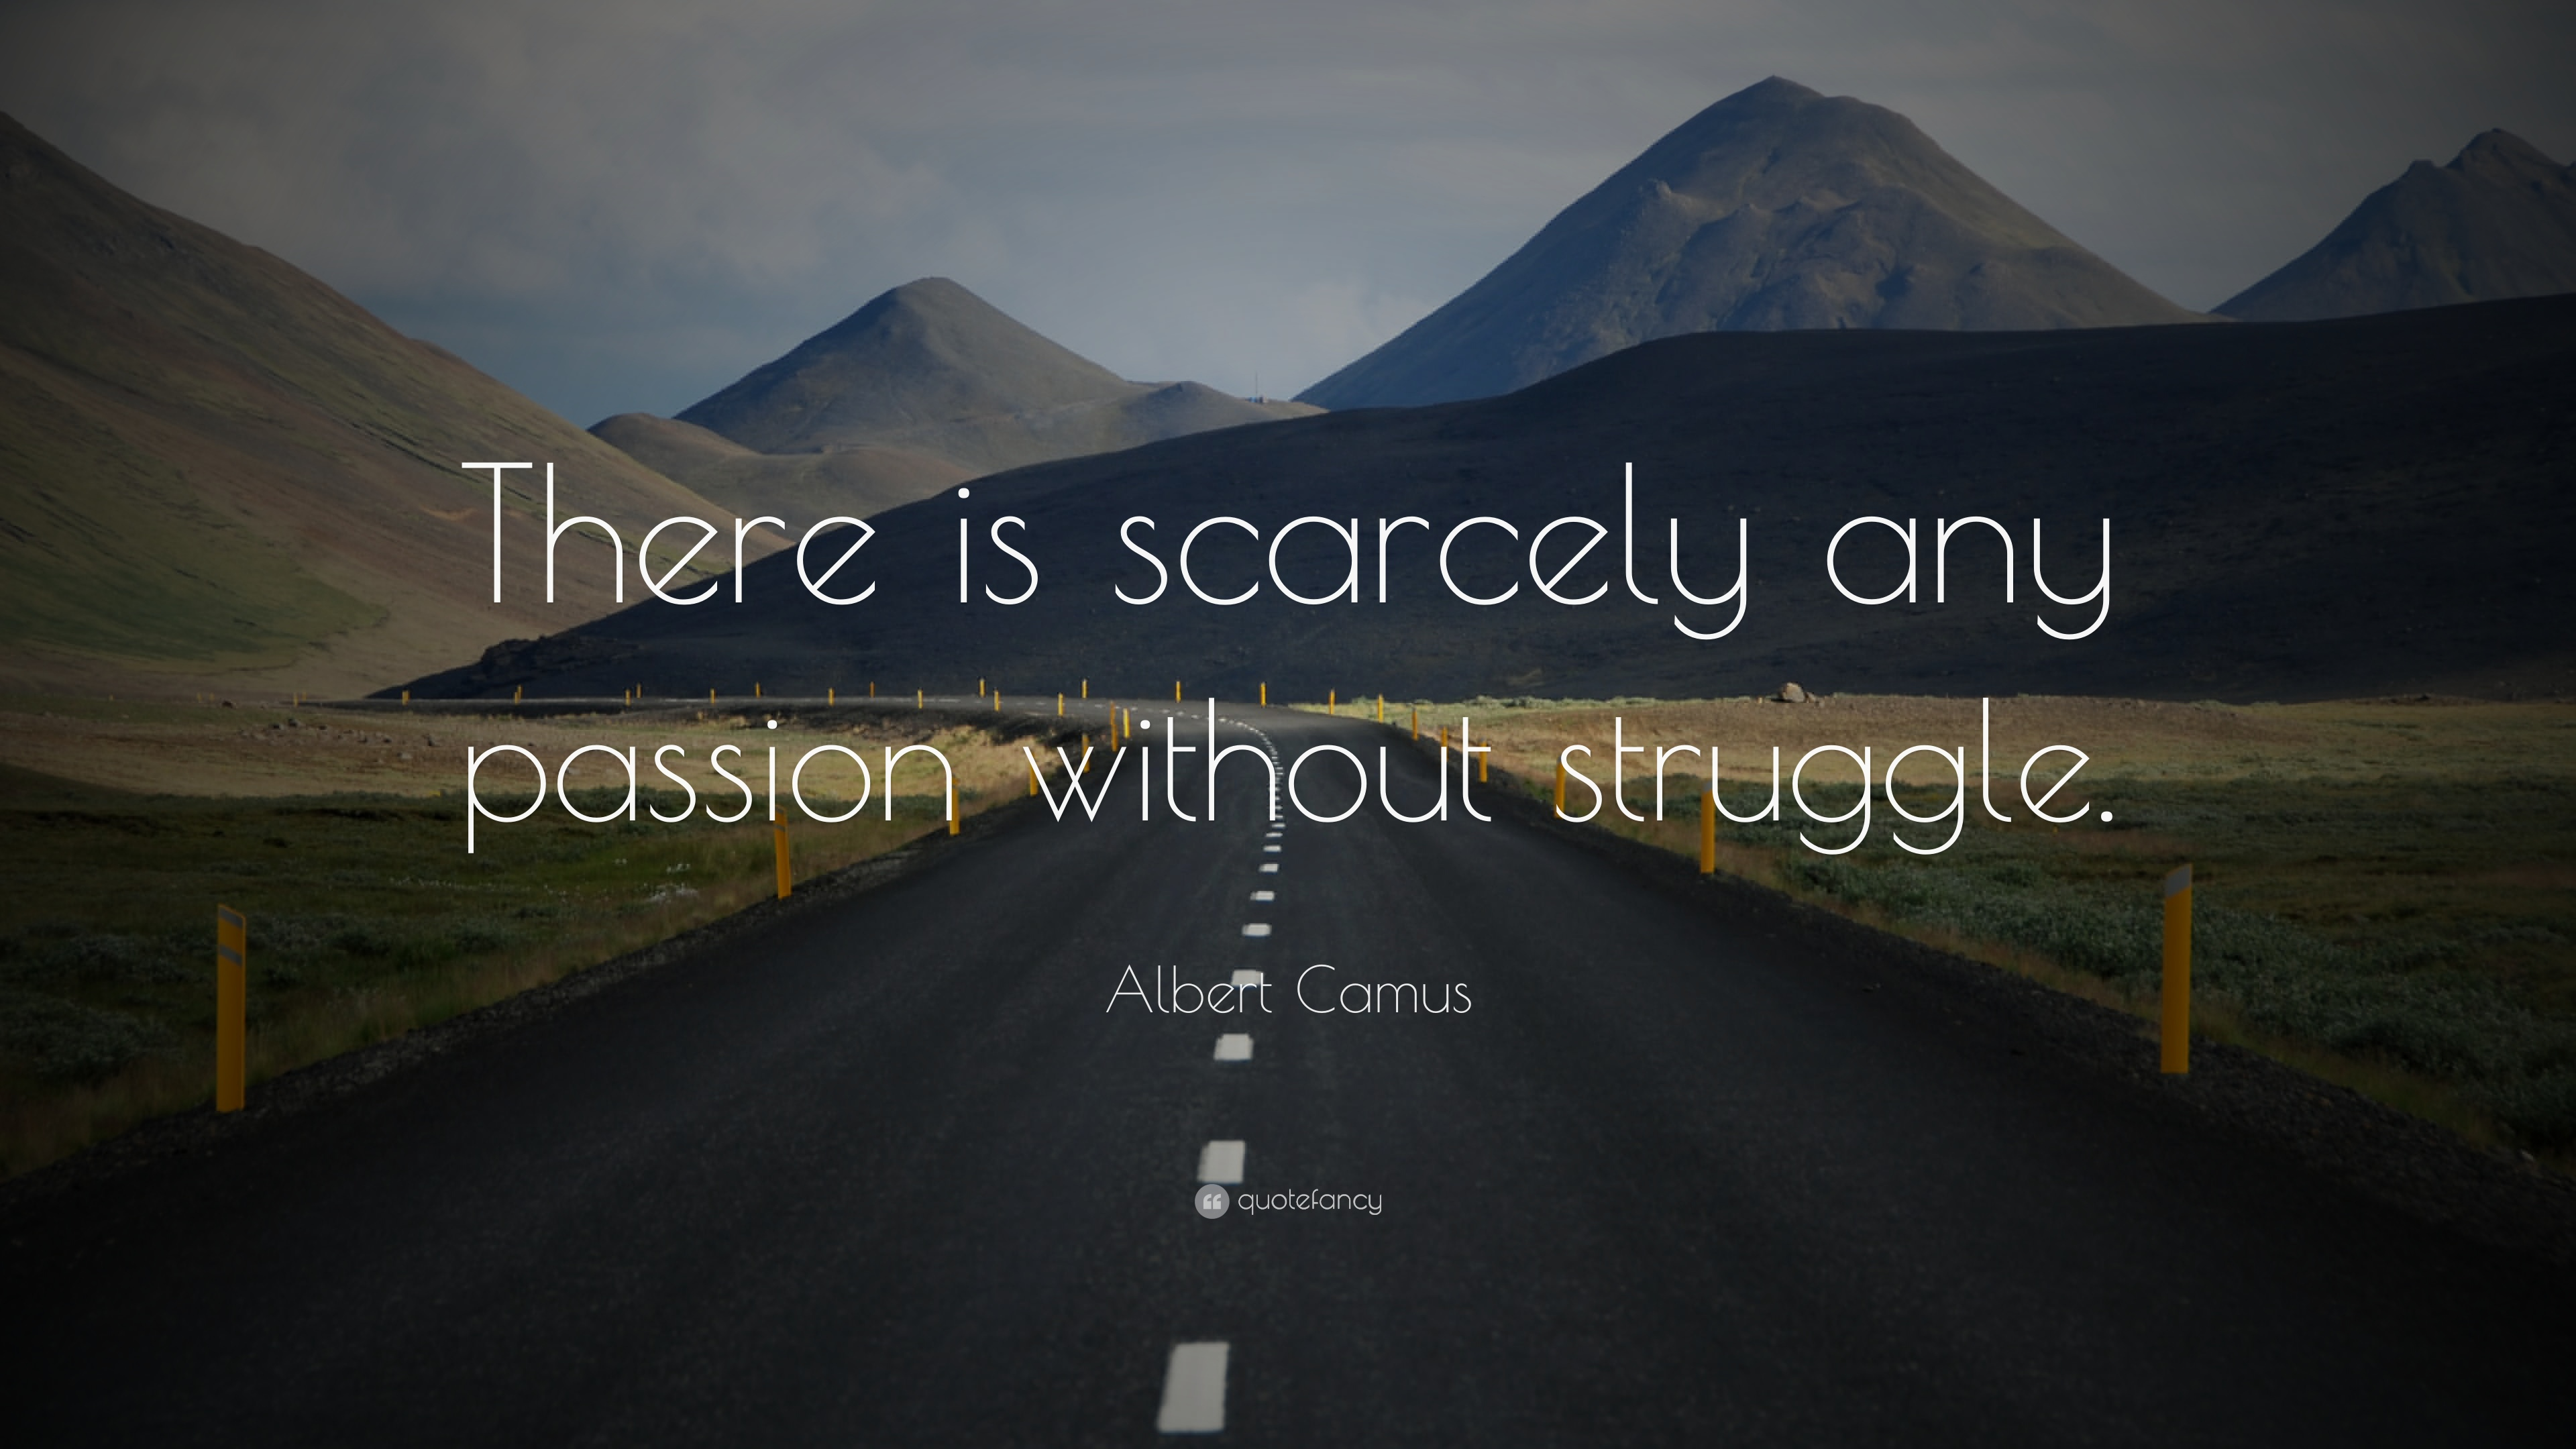 Desktop Wallpaper With Friendship Quotes Albert Camus Quote There Is Scarcely Any Passion Without